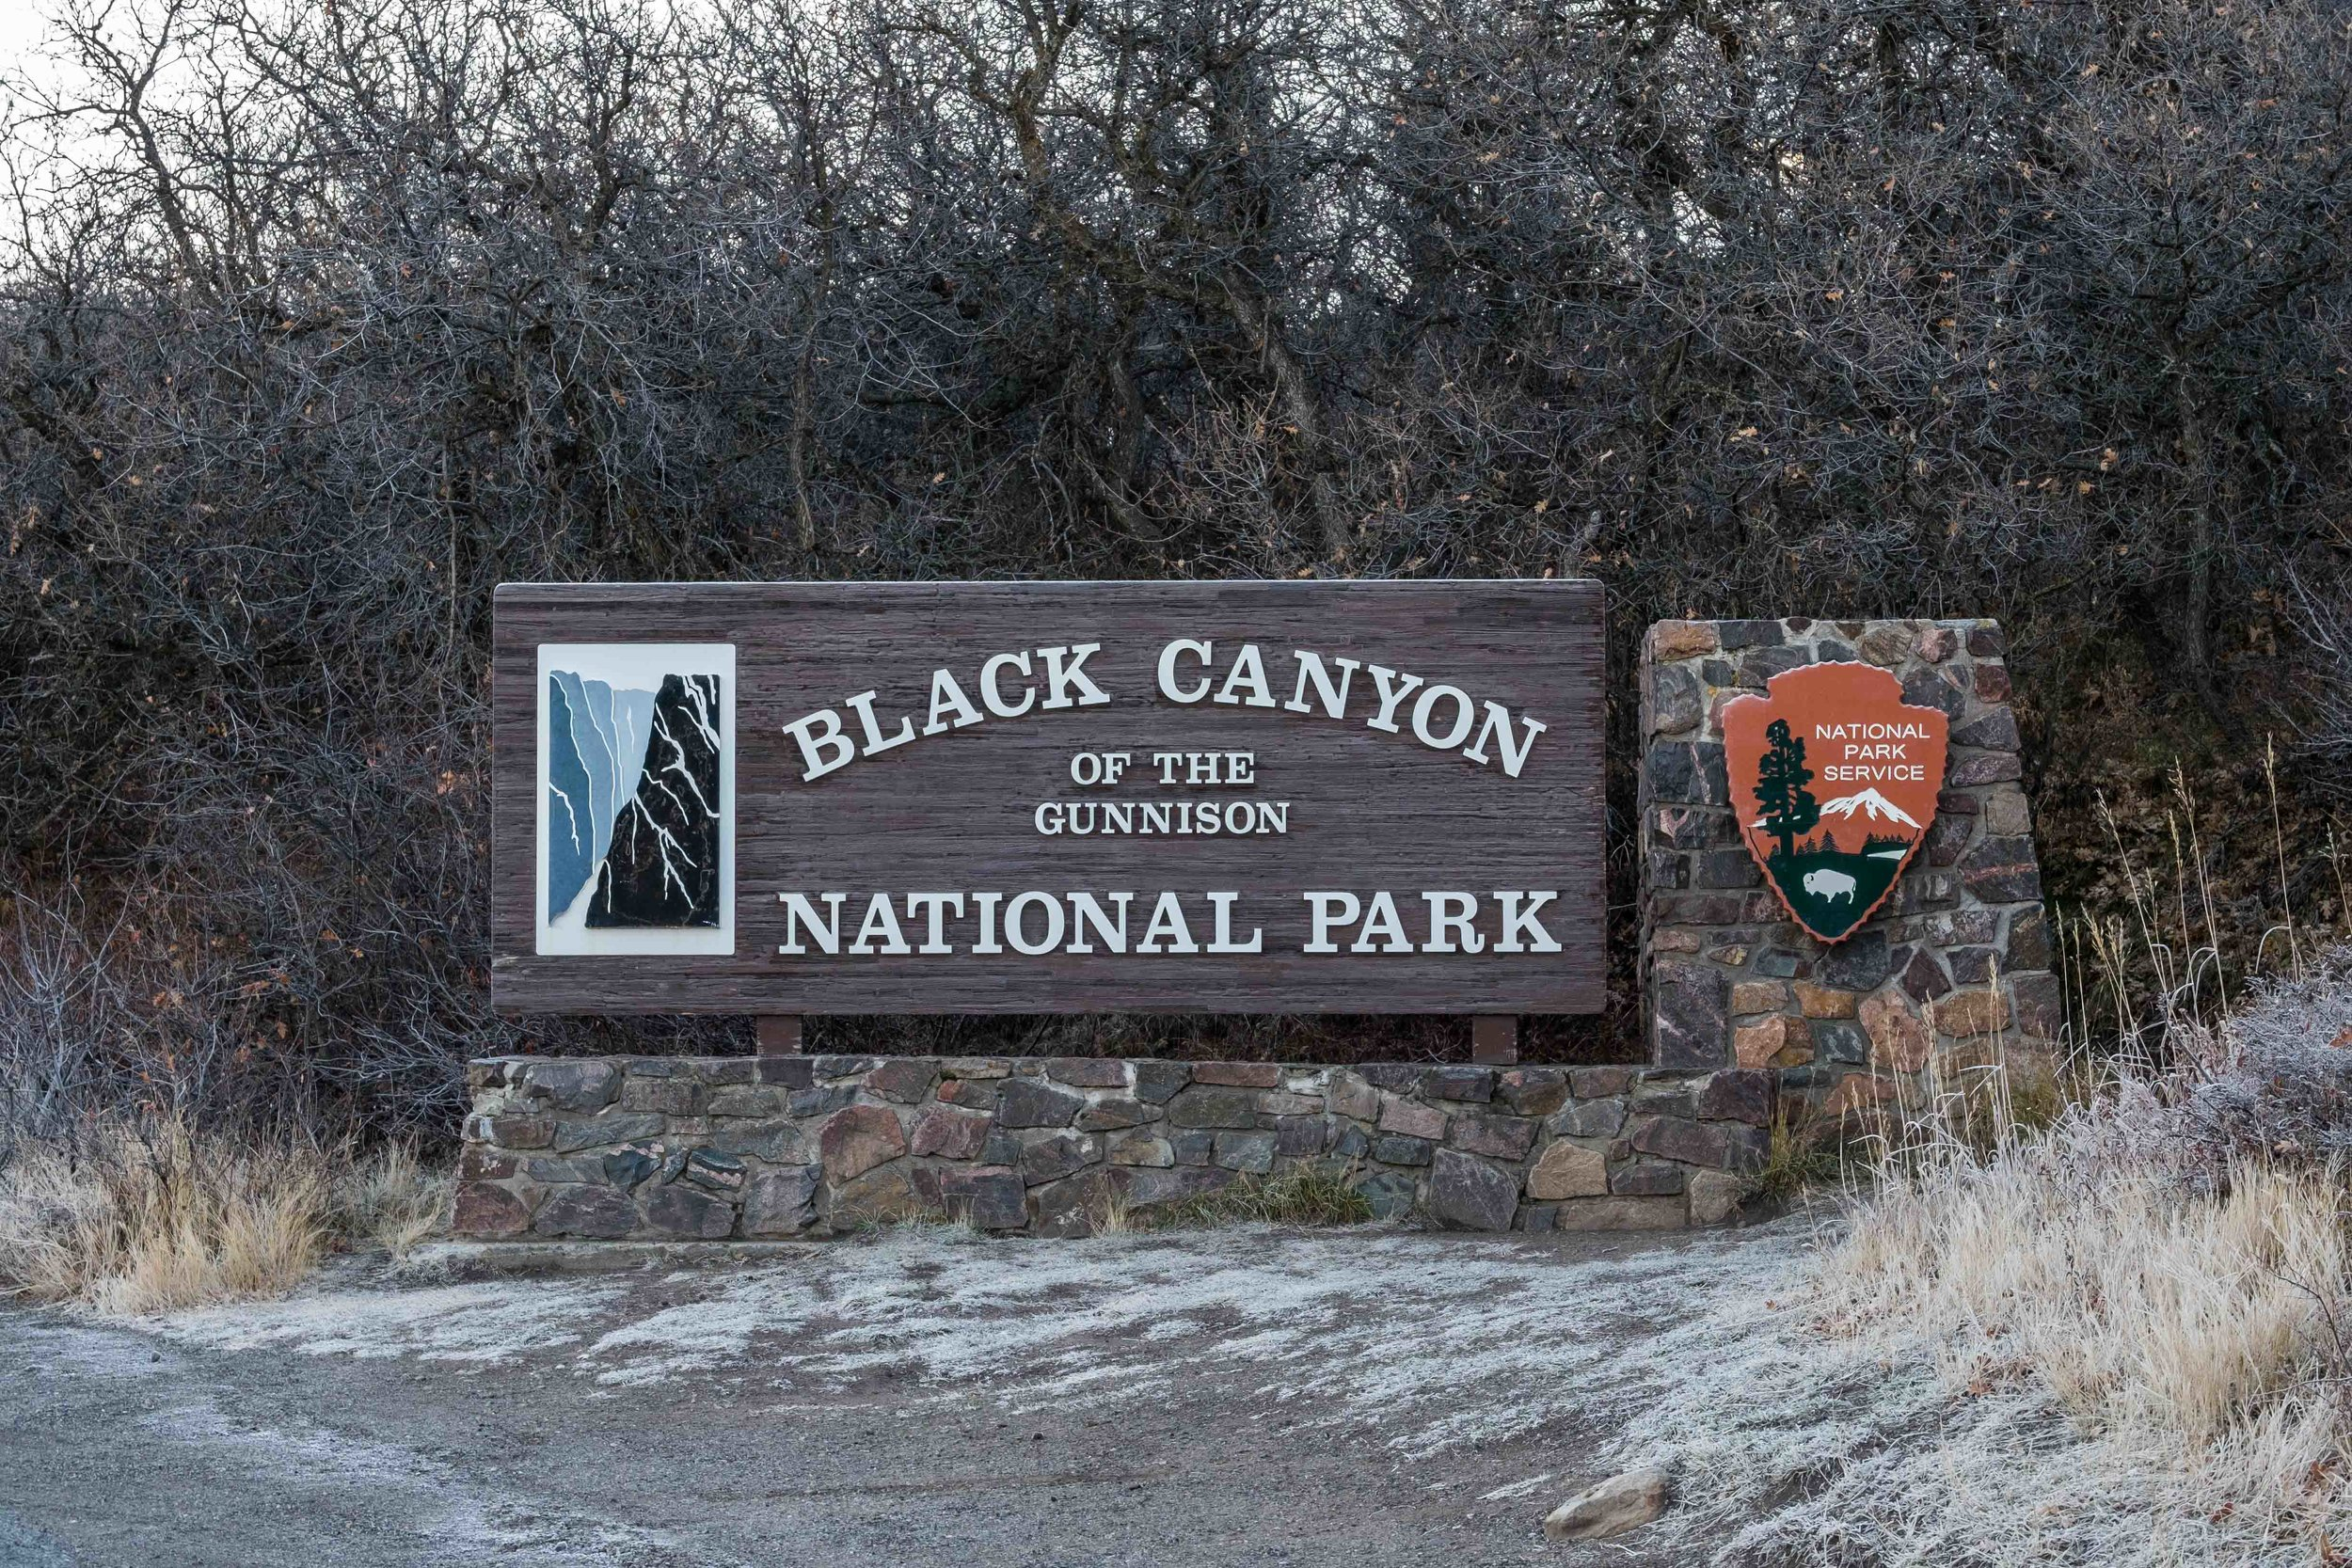 The park entrance sign to Black Canyon of the Gunnison National Park in Colorado.